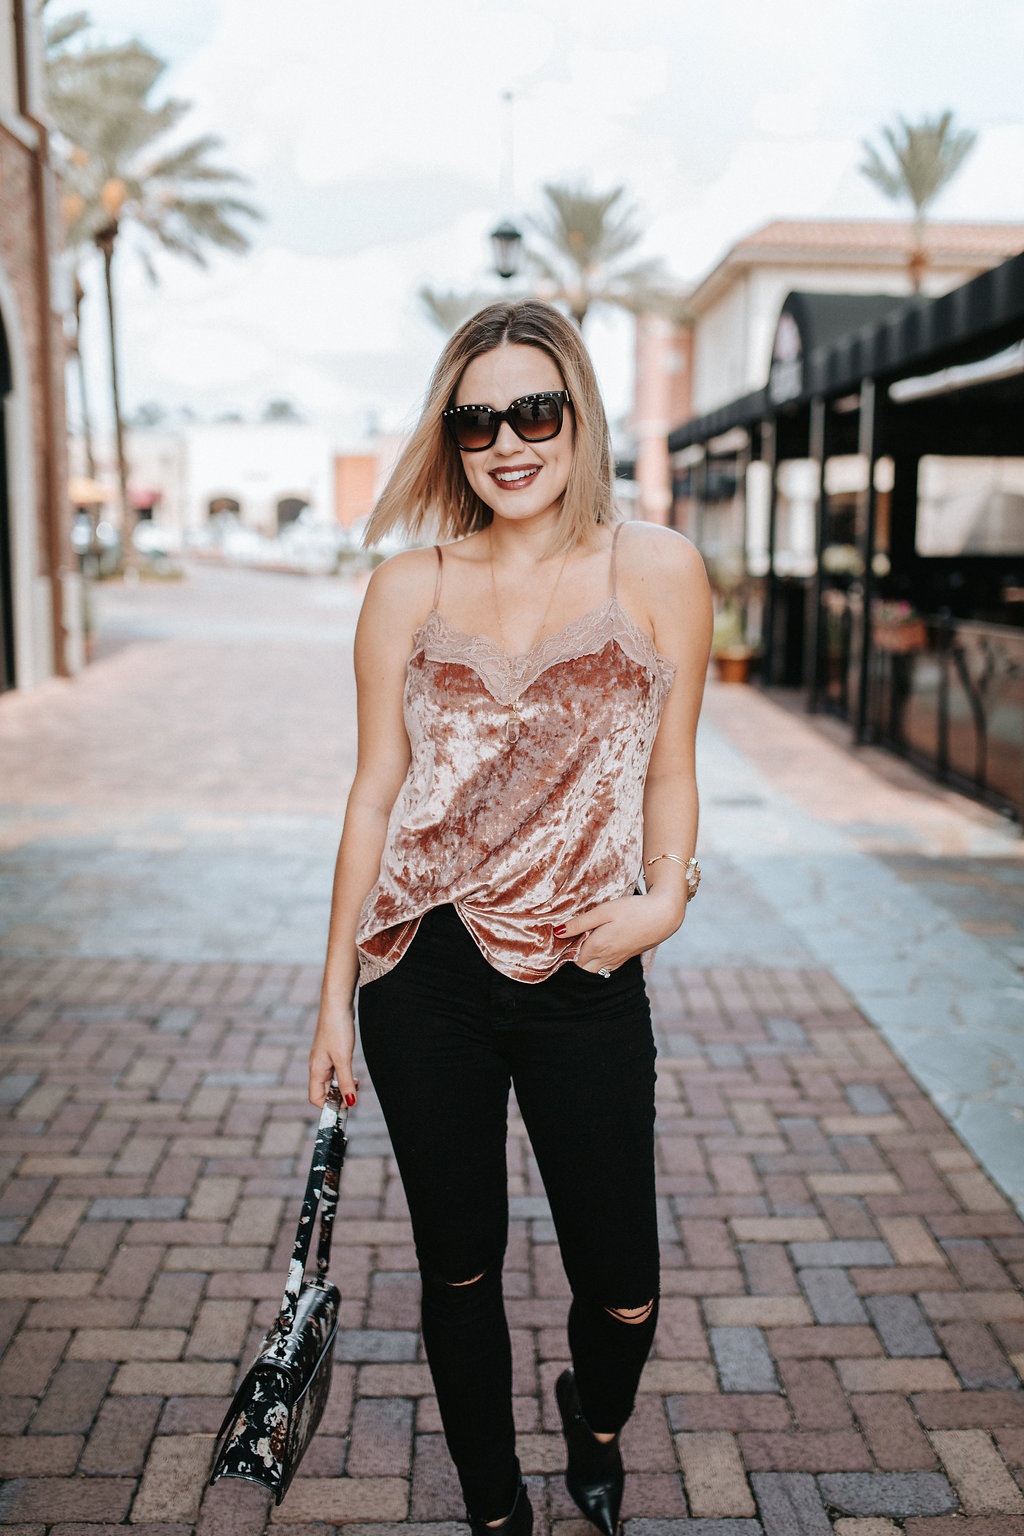 Crushed Velvet Top, Hot or Not? by Houston fashion blogger Uptown with Elly Brown